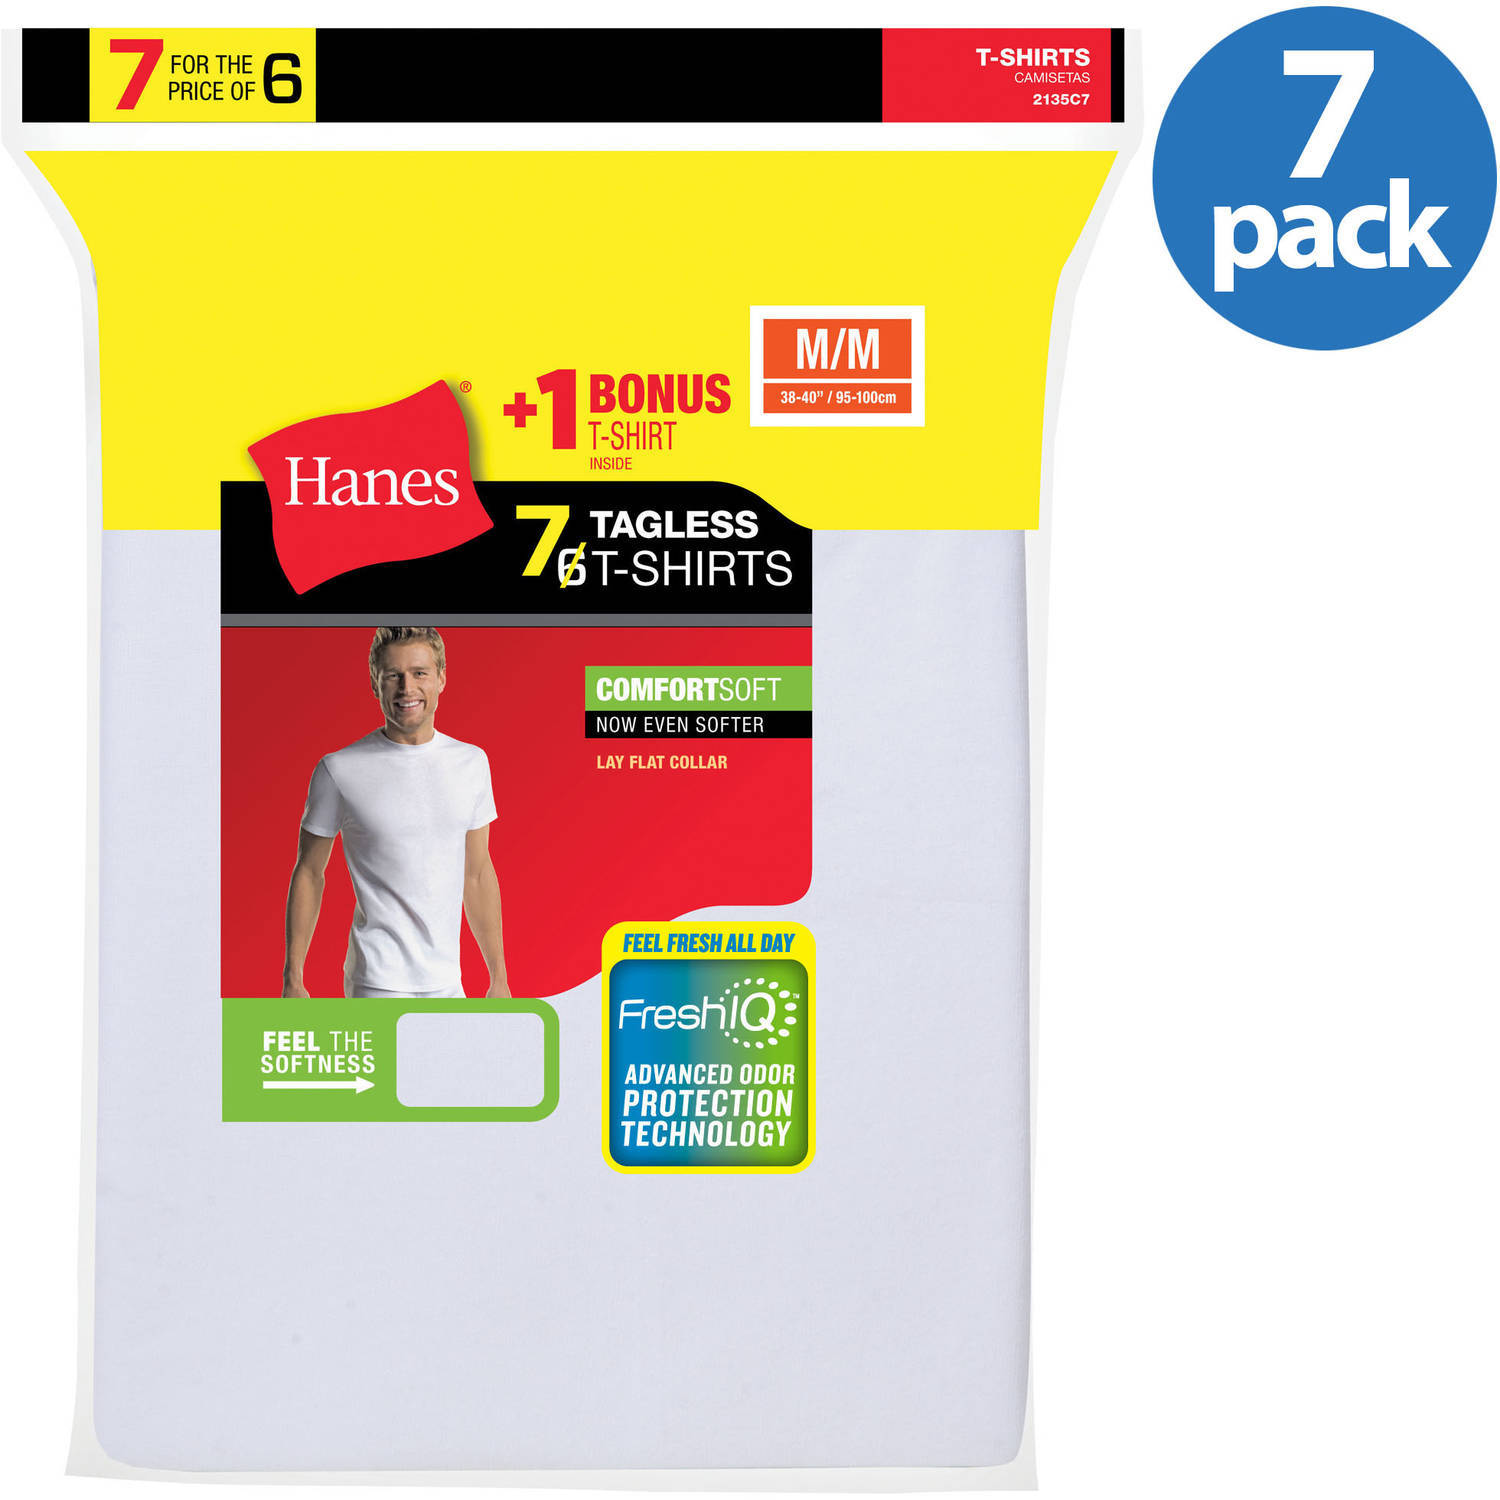 Hanes Men's Fresh IQ White Crew Neck T-Shirt 6+1 Free Bonus Pack